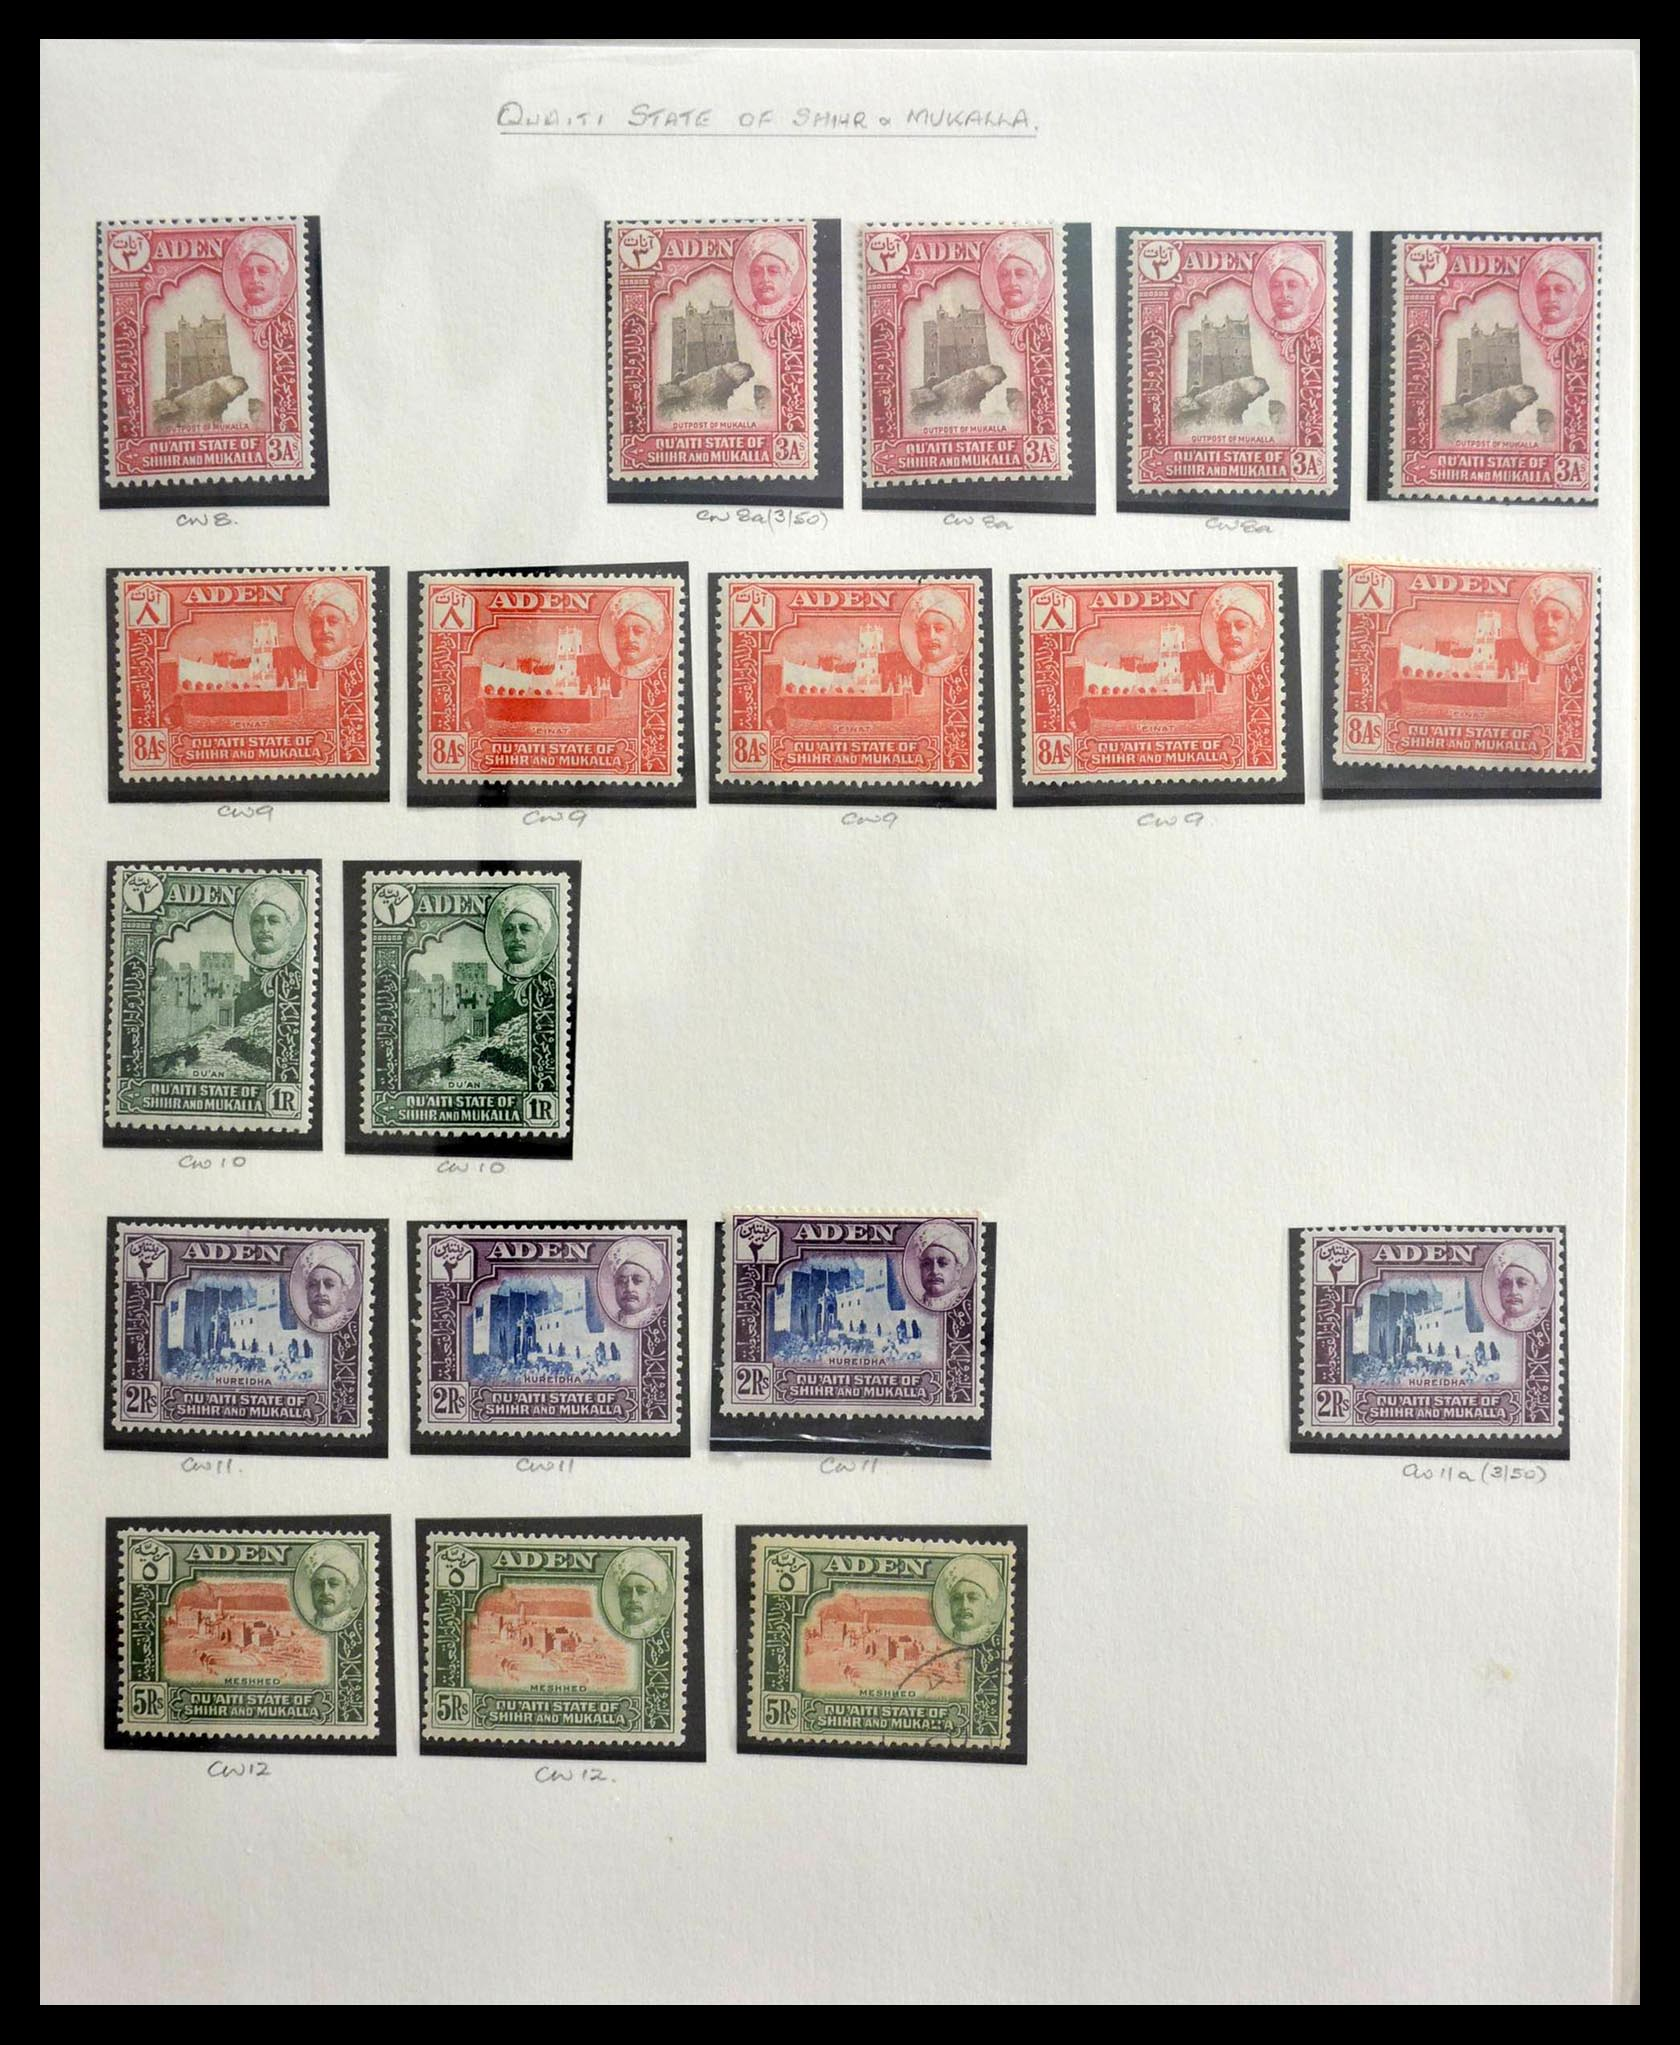 28672 006 - Stamp collection 28672 Aden Qu'aiti State 1942-1966.